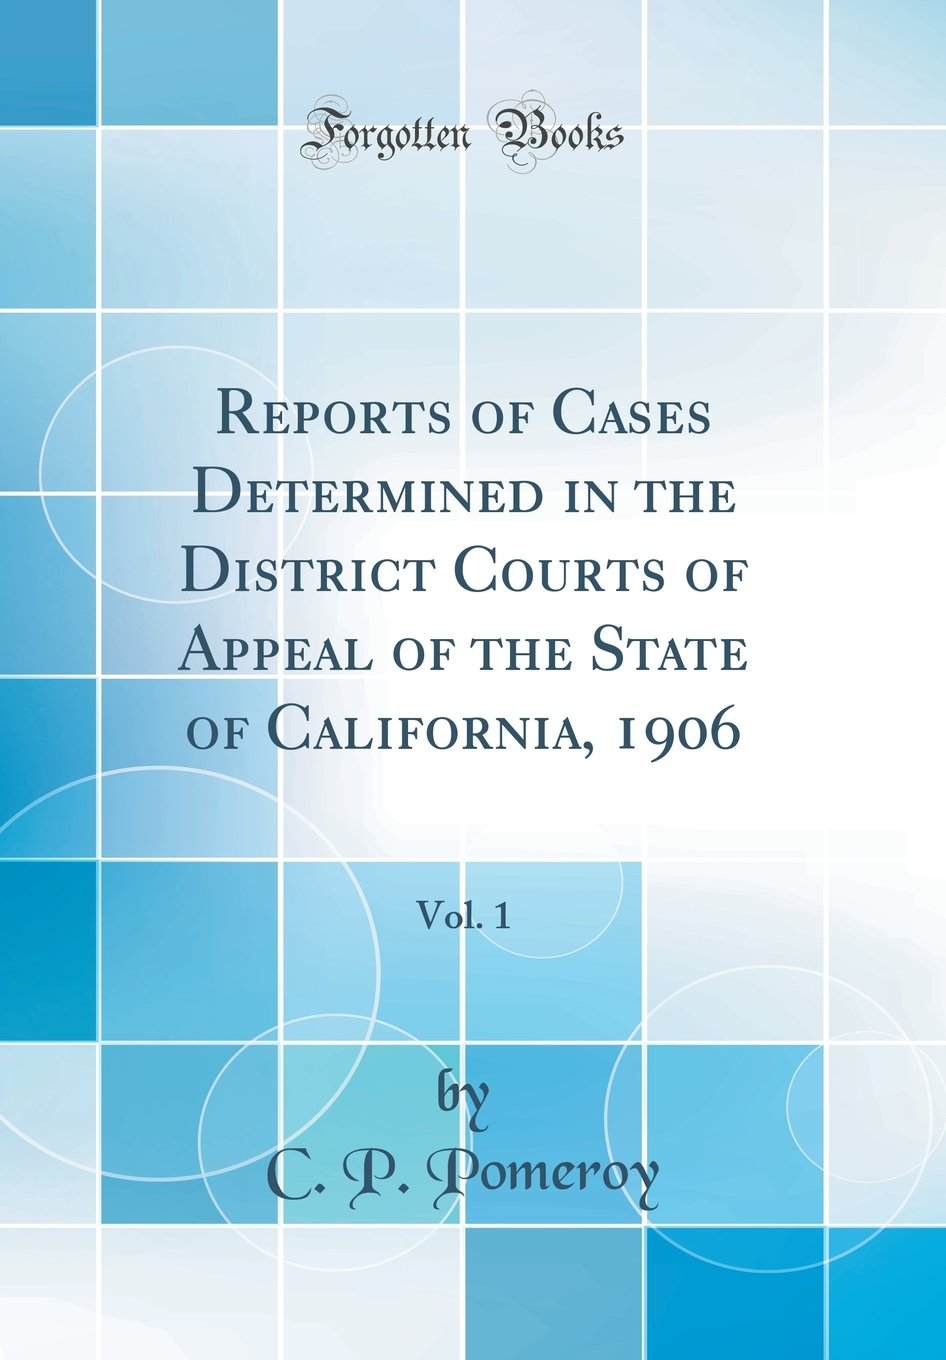 Download Reports of Cases Determined in the District Courts of Appeal of the State of California, 1906, Vol. 1 (Classic Reprint) ebook